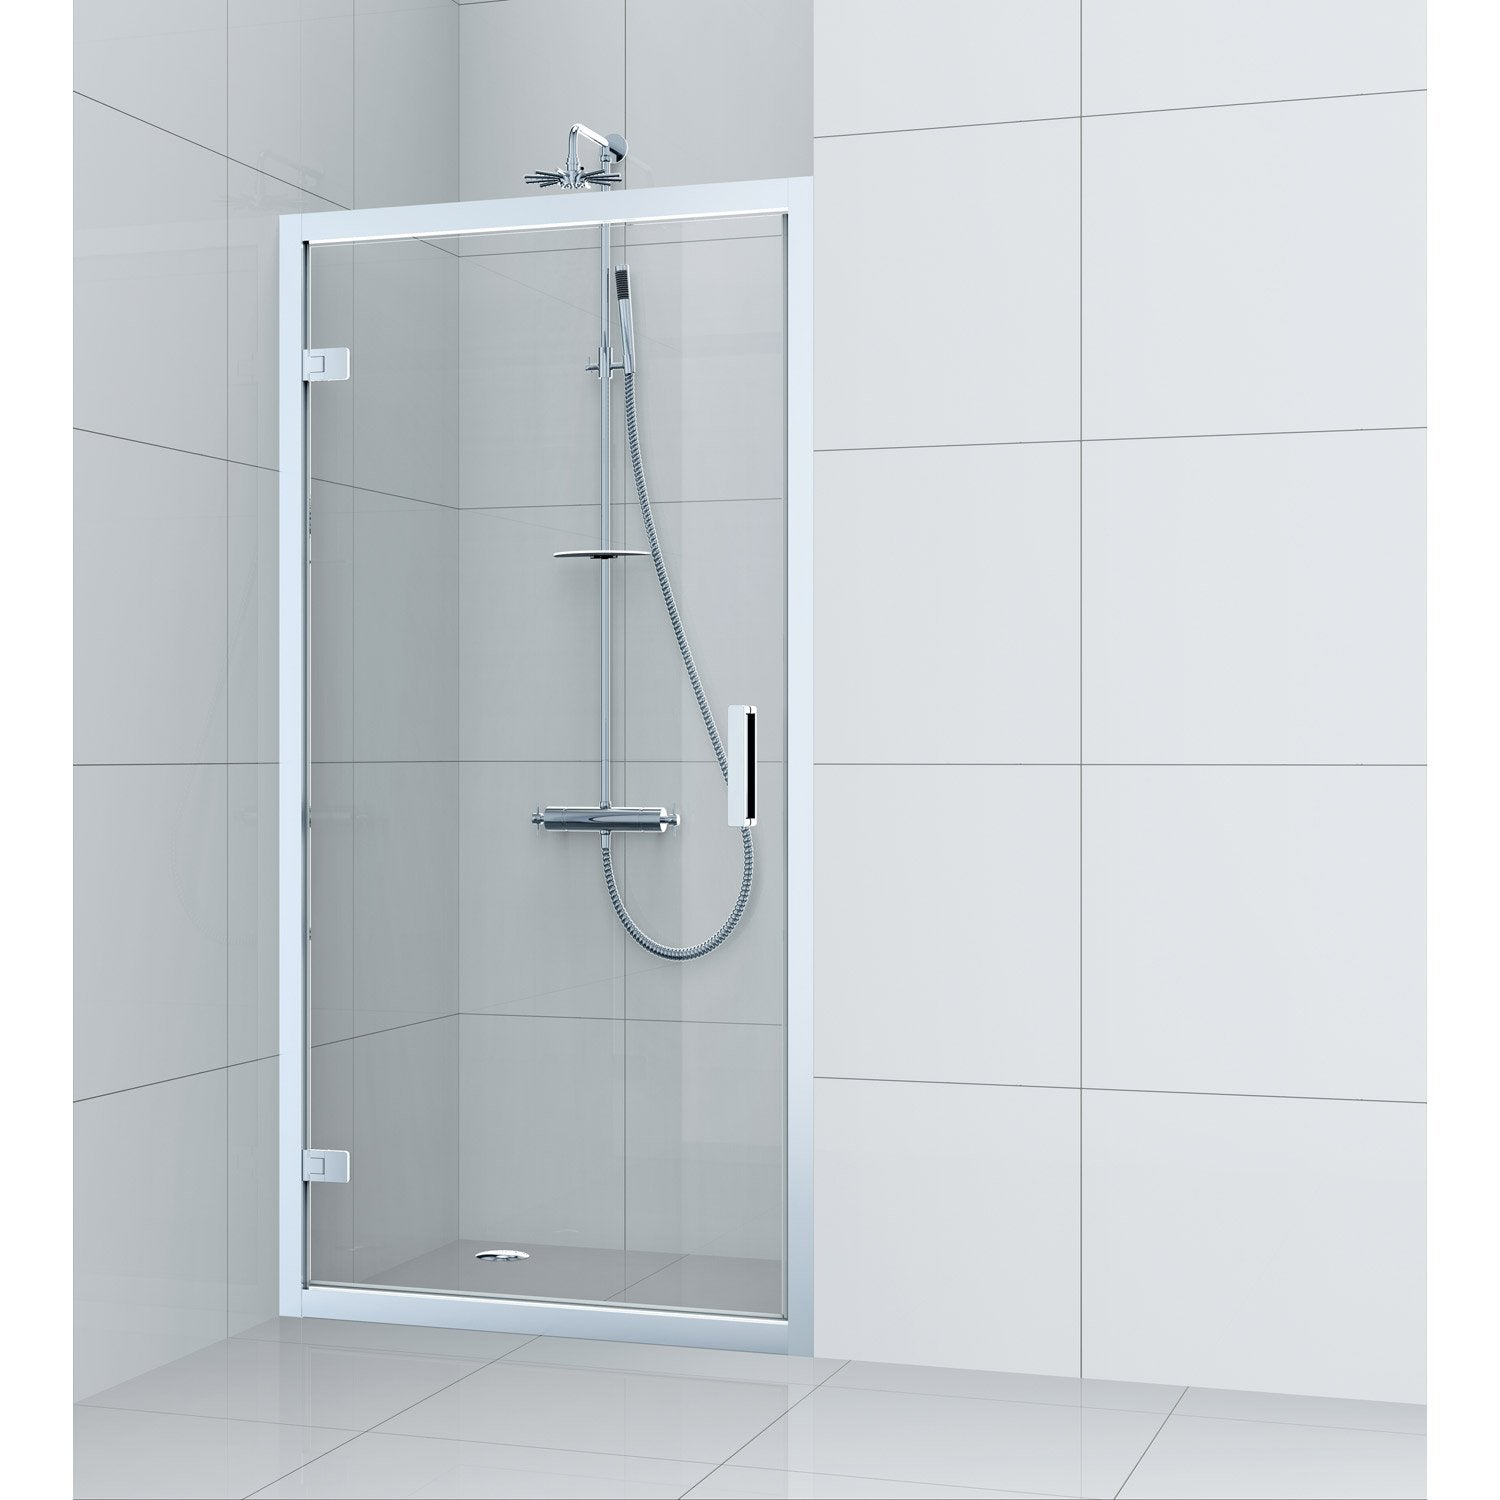 Porte de douche pivotante 100 cm transparent charm for Porte de douche 100